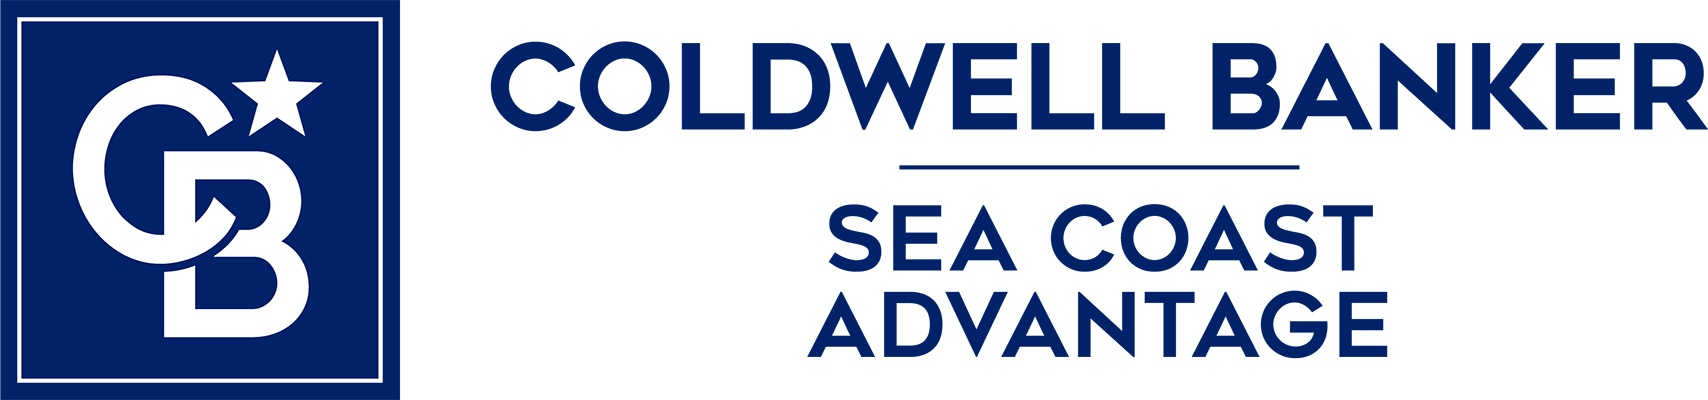 Tom Gale - Coldwell Banker Sea Coast Advantage Realty